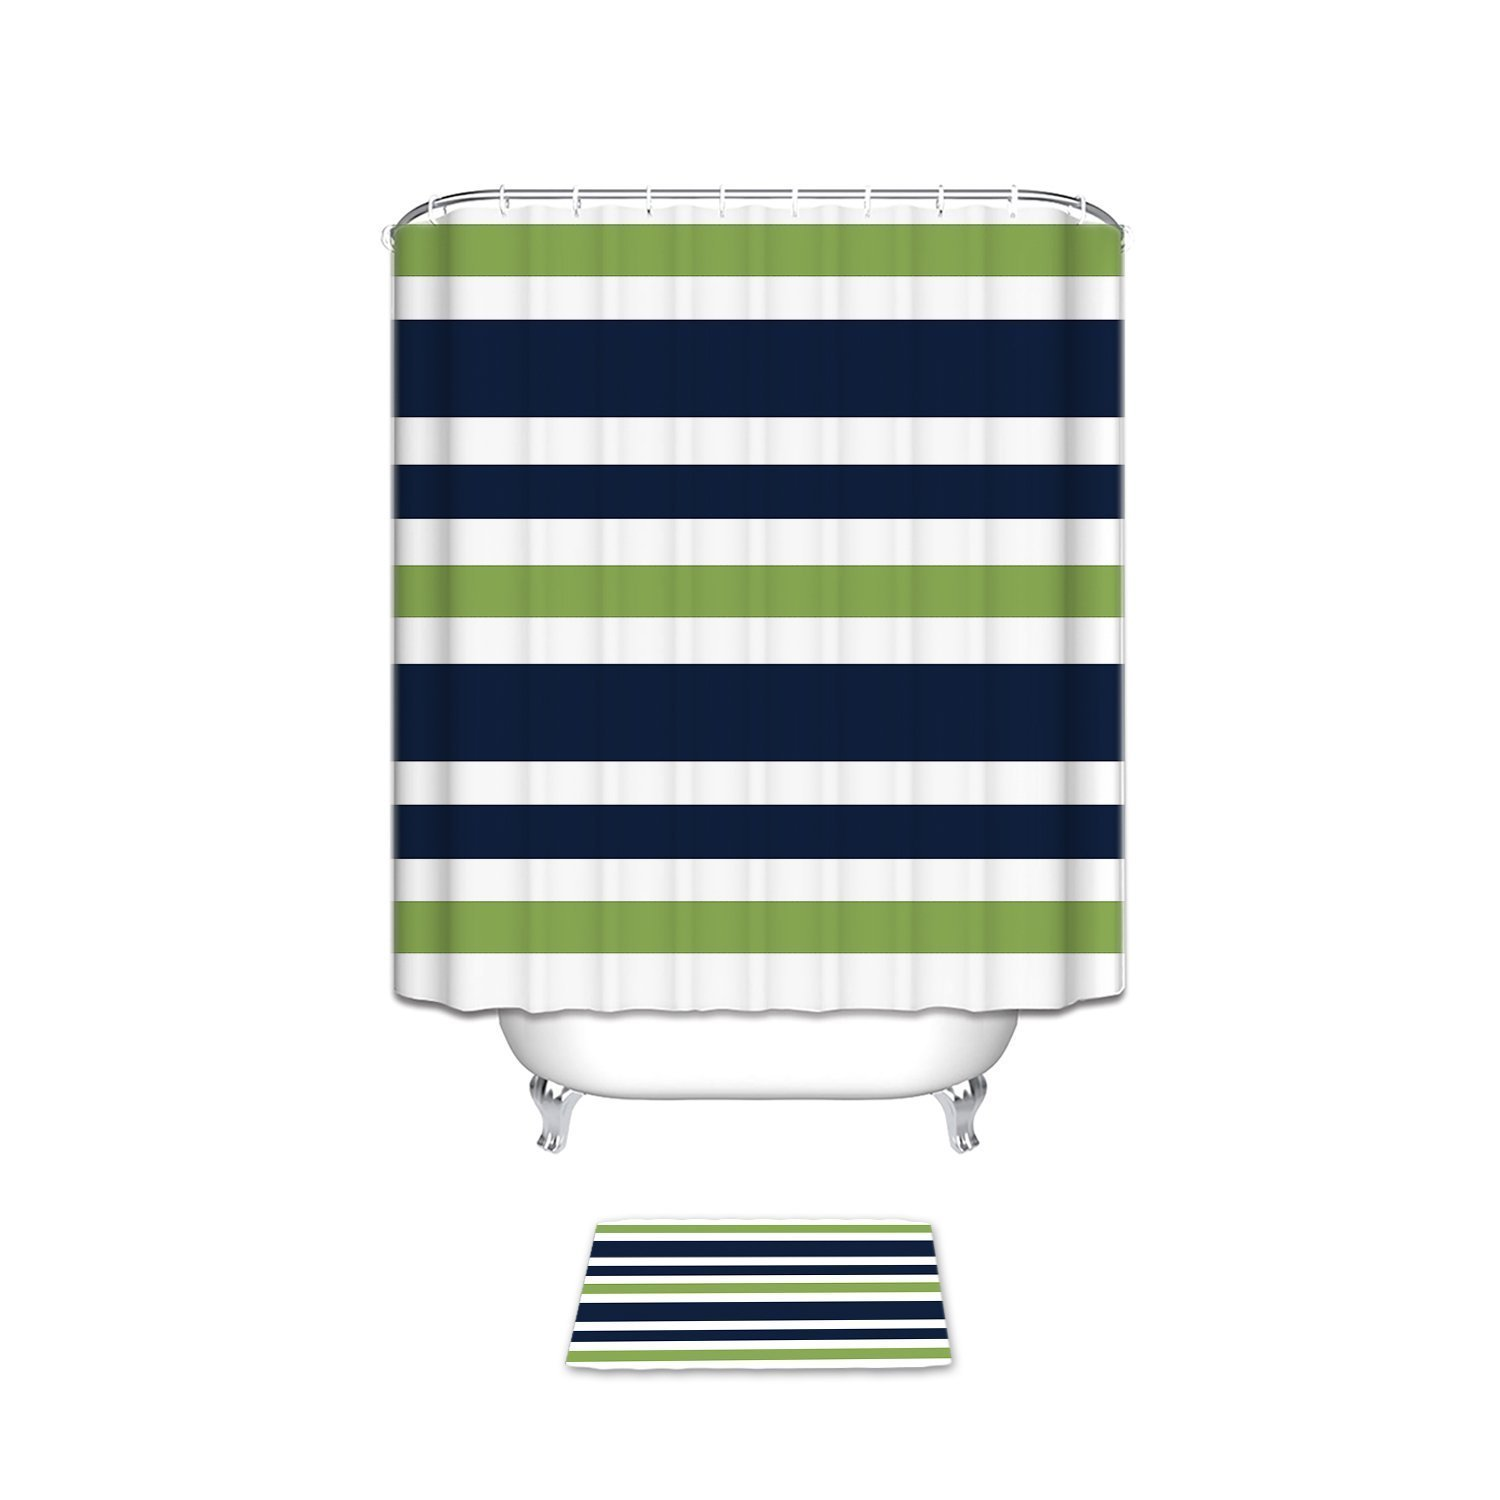 CHARMHOME Navy <font><b>Blue</b></font> Lime Green and White Kids <font><b>Bathroom</b></font> Fabric Bath Stripes Shower Curtain Sets with Mats Rugs Doormat Carpet